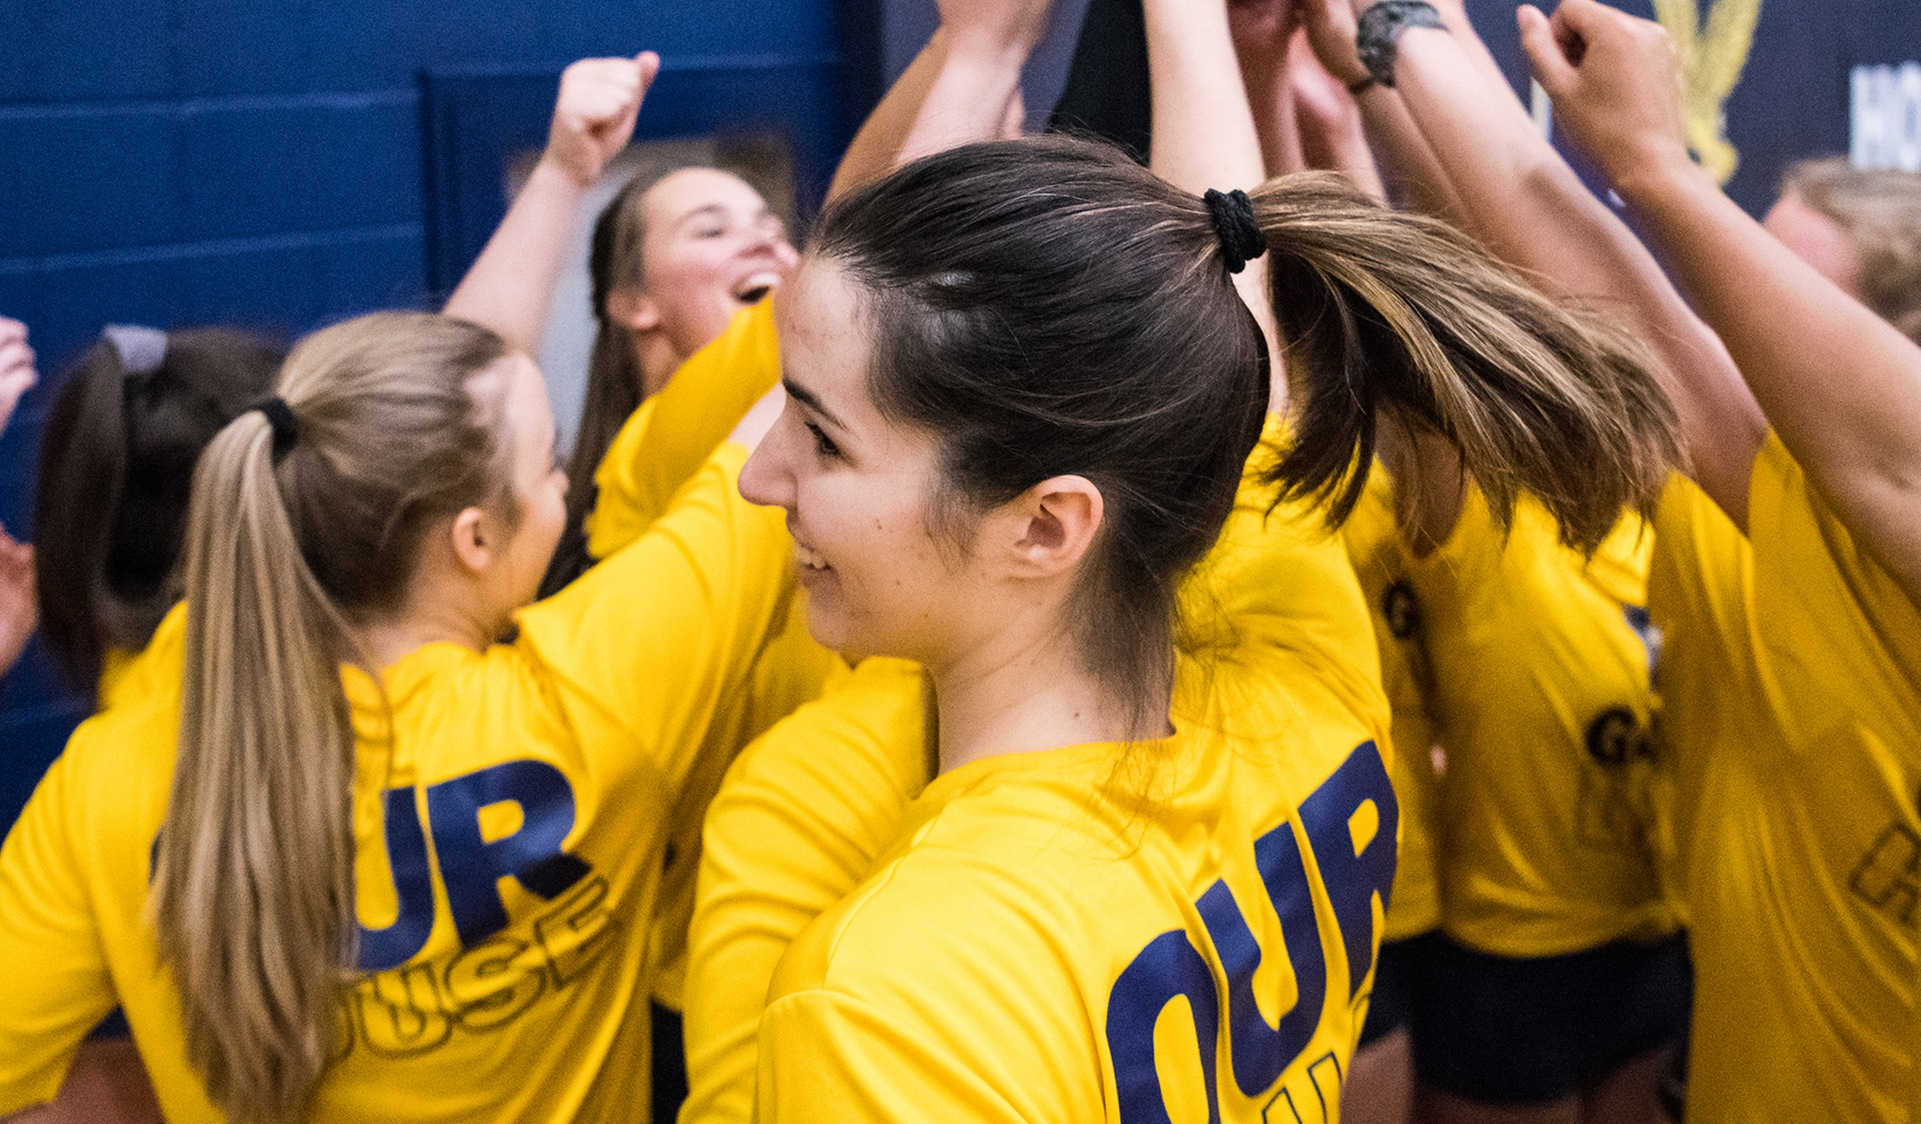 HAWKS DEFEAT BOREAL TO SWEEP NORTHERN SWING AND RUN RECORD TO 3-0